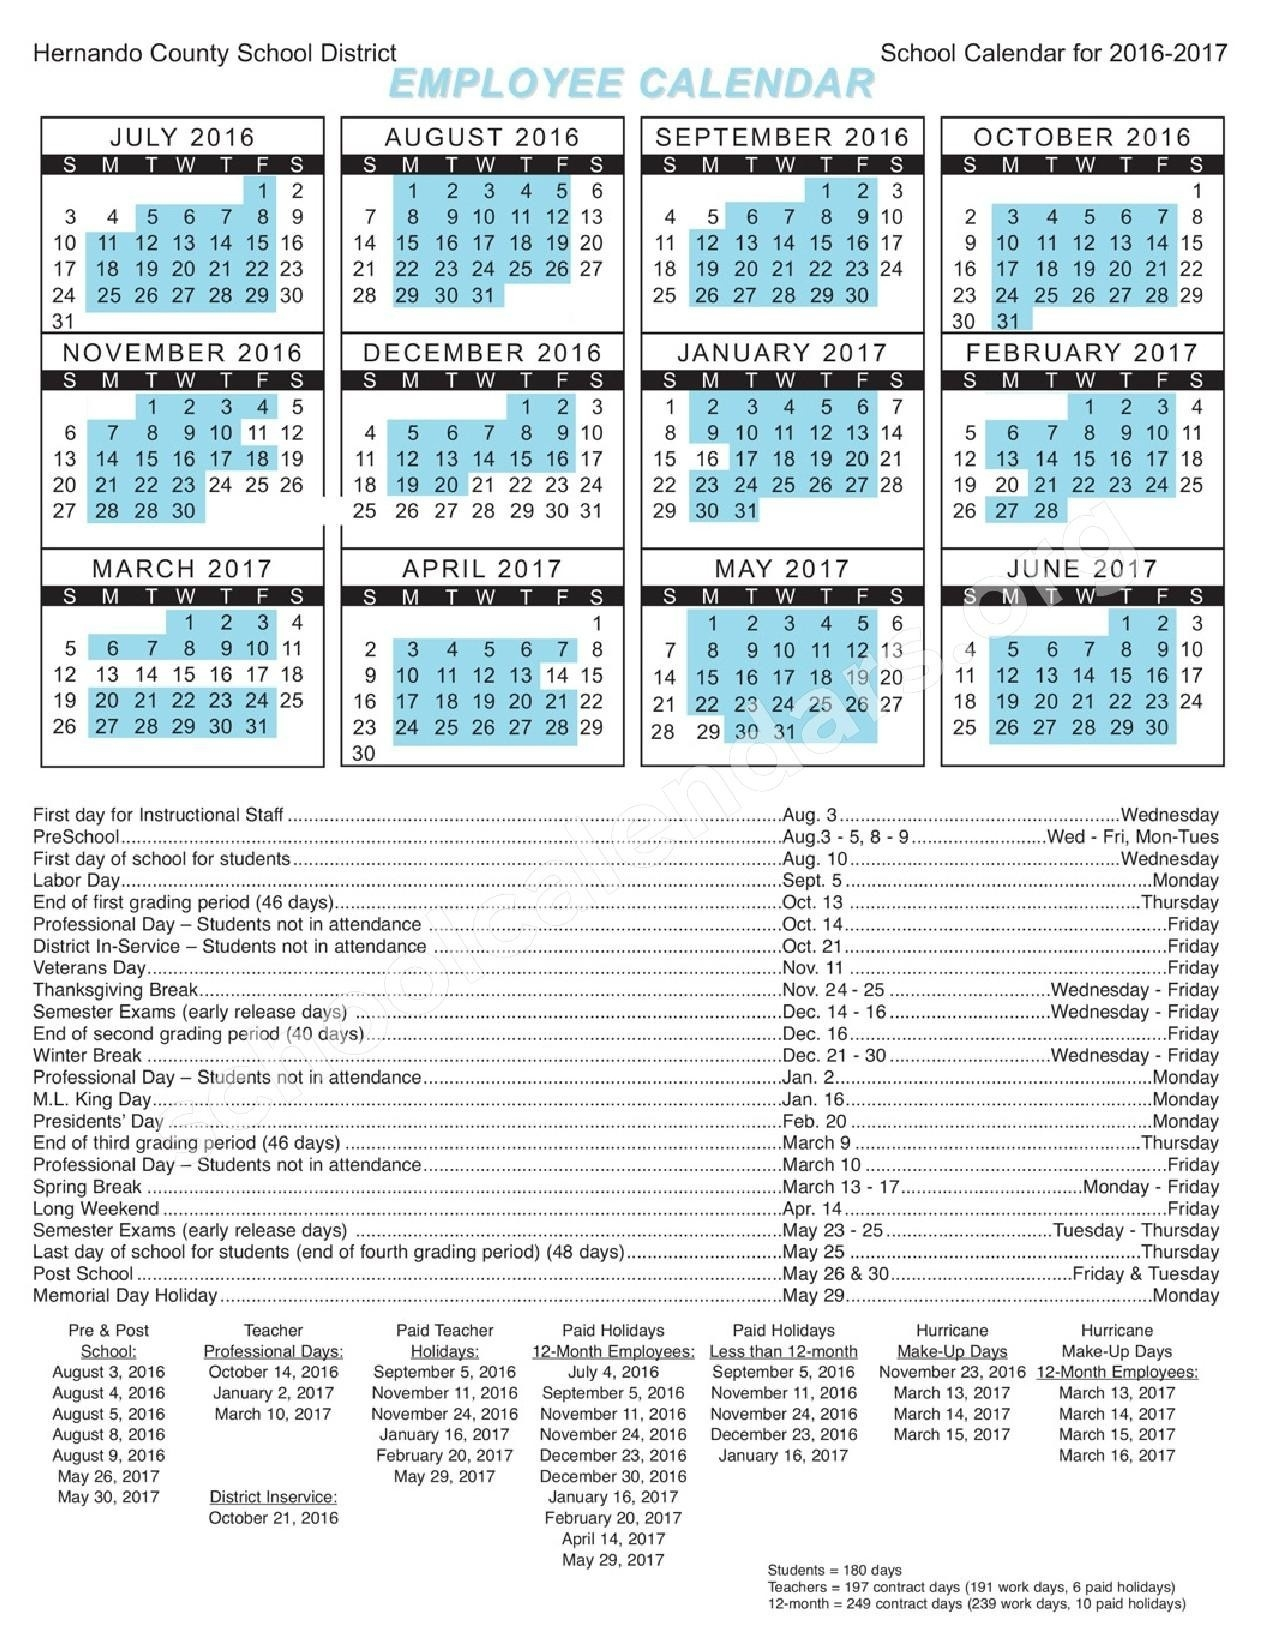 Hernando County 2018 School Calendar Printable For Free Of Cost_School Calendar Hernando County